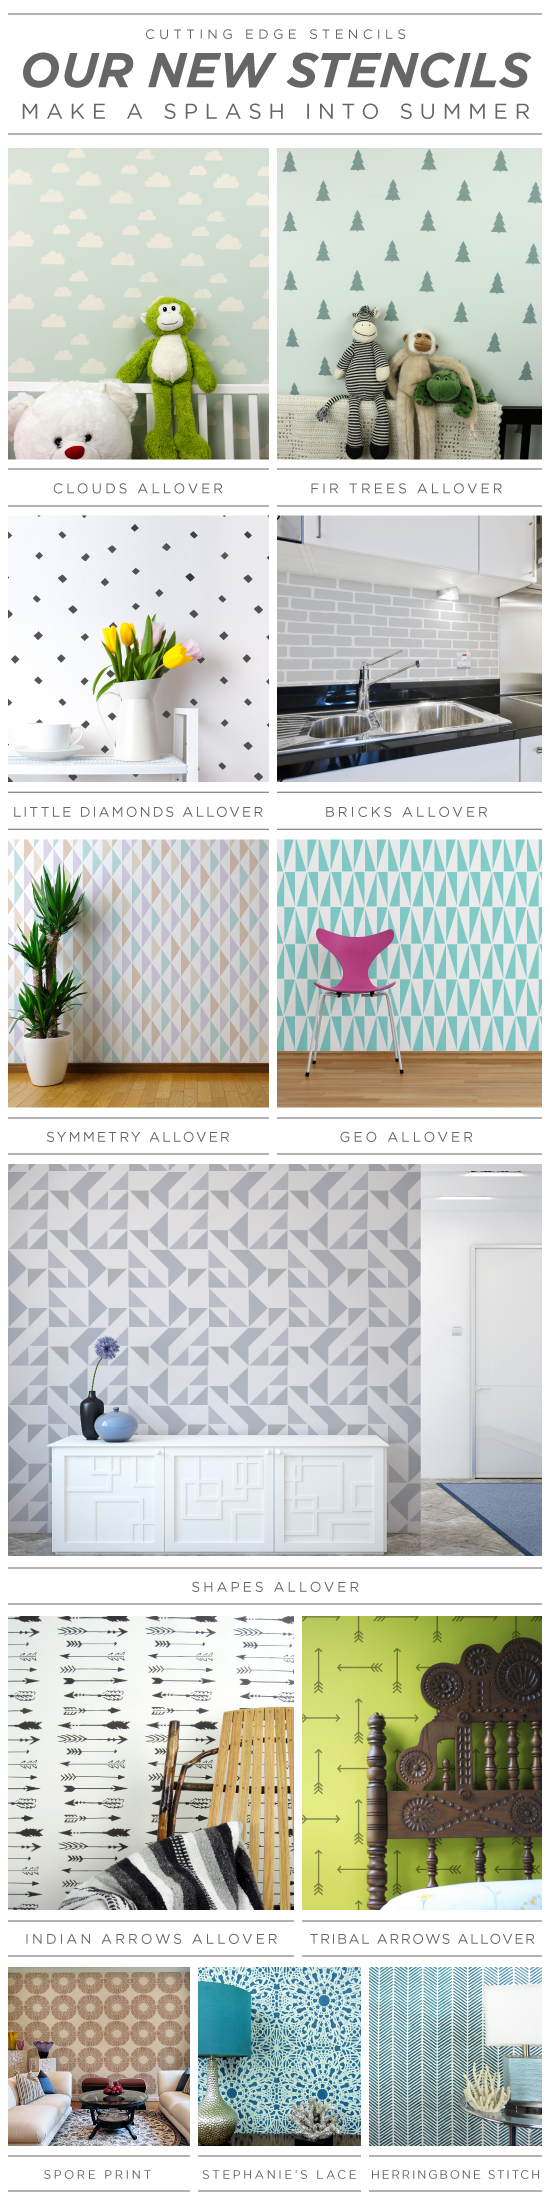 New wall stencil patterns from Cutting Edge Stencils. http://www.cuttingedgestencils.com/wall-stencils-stencil-designs.html